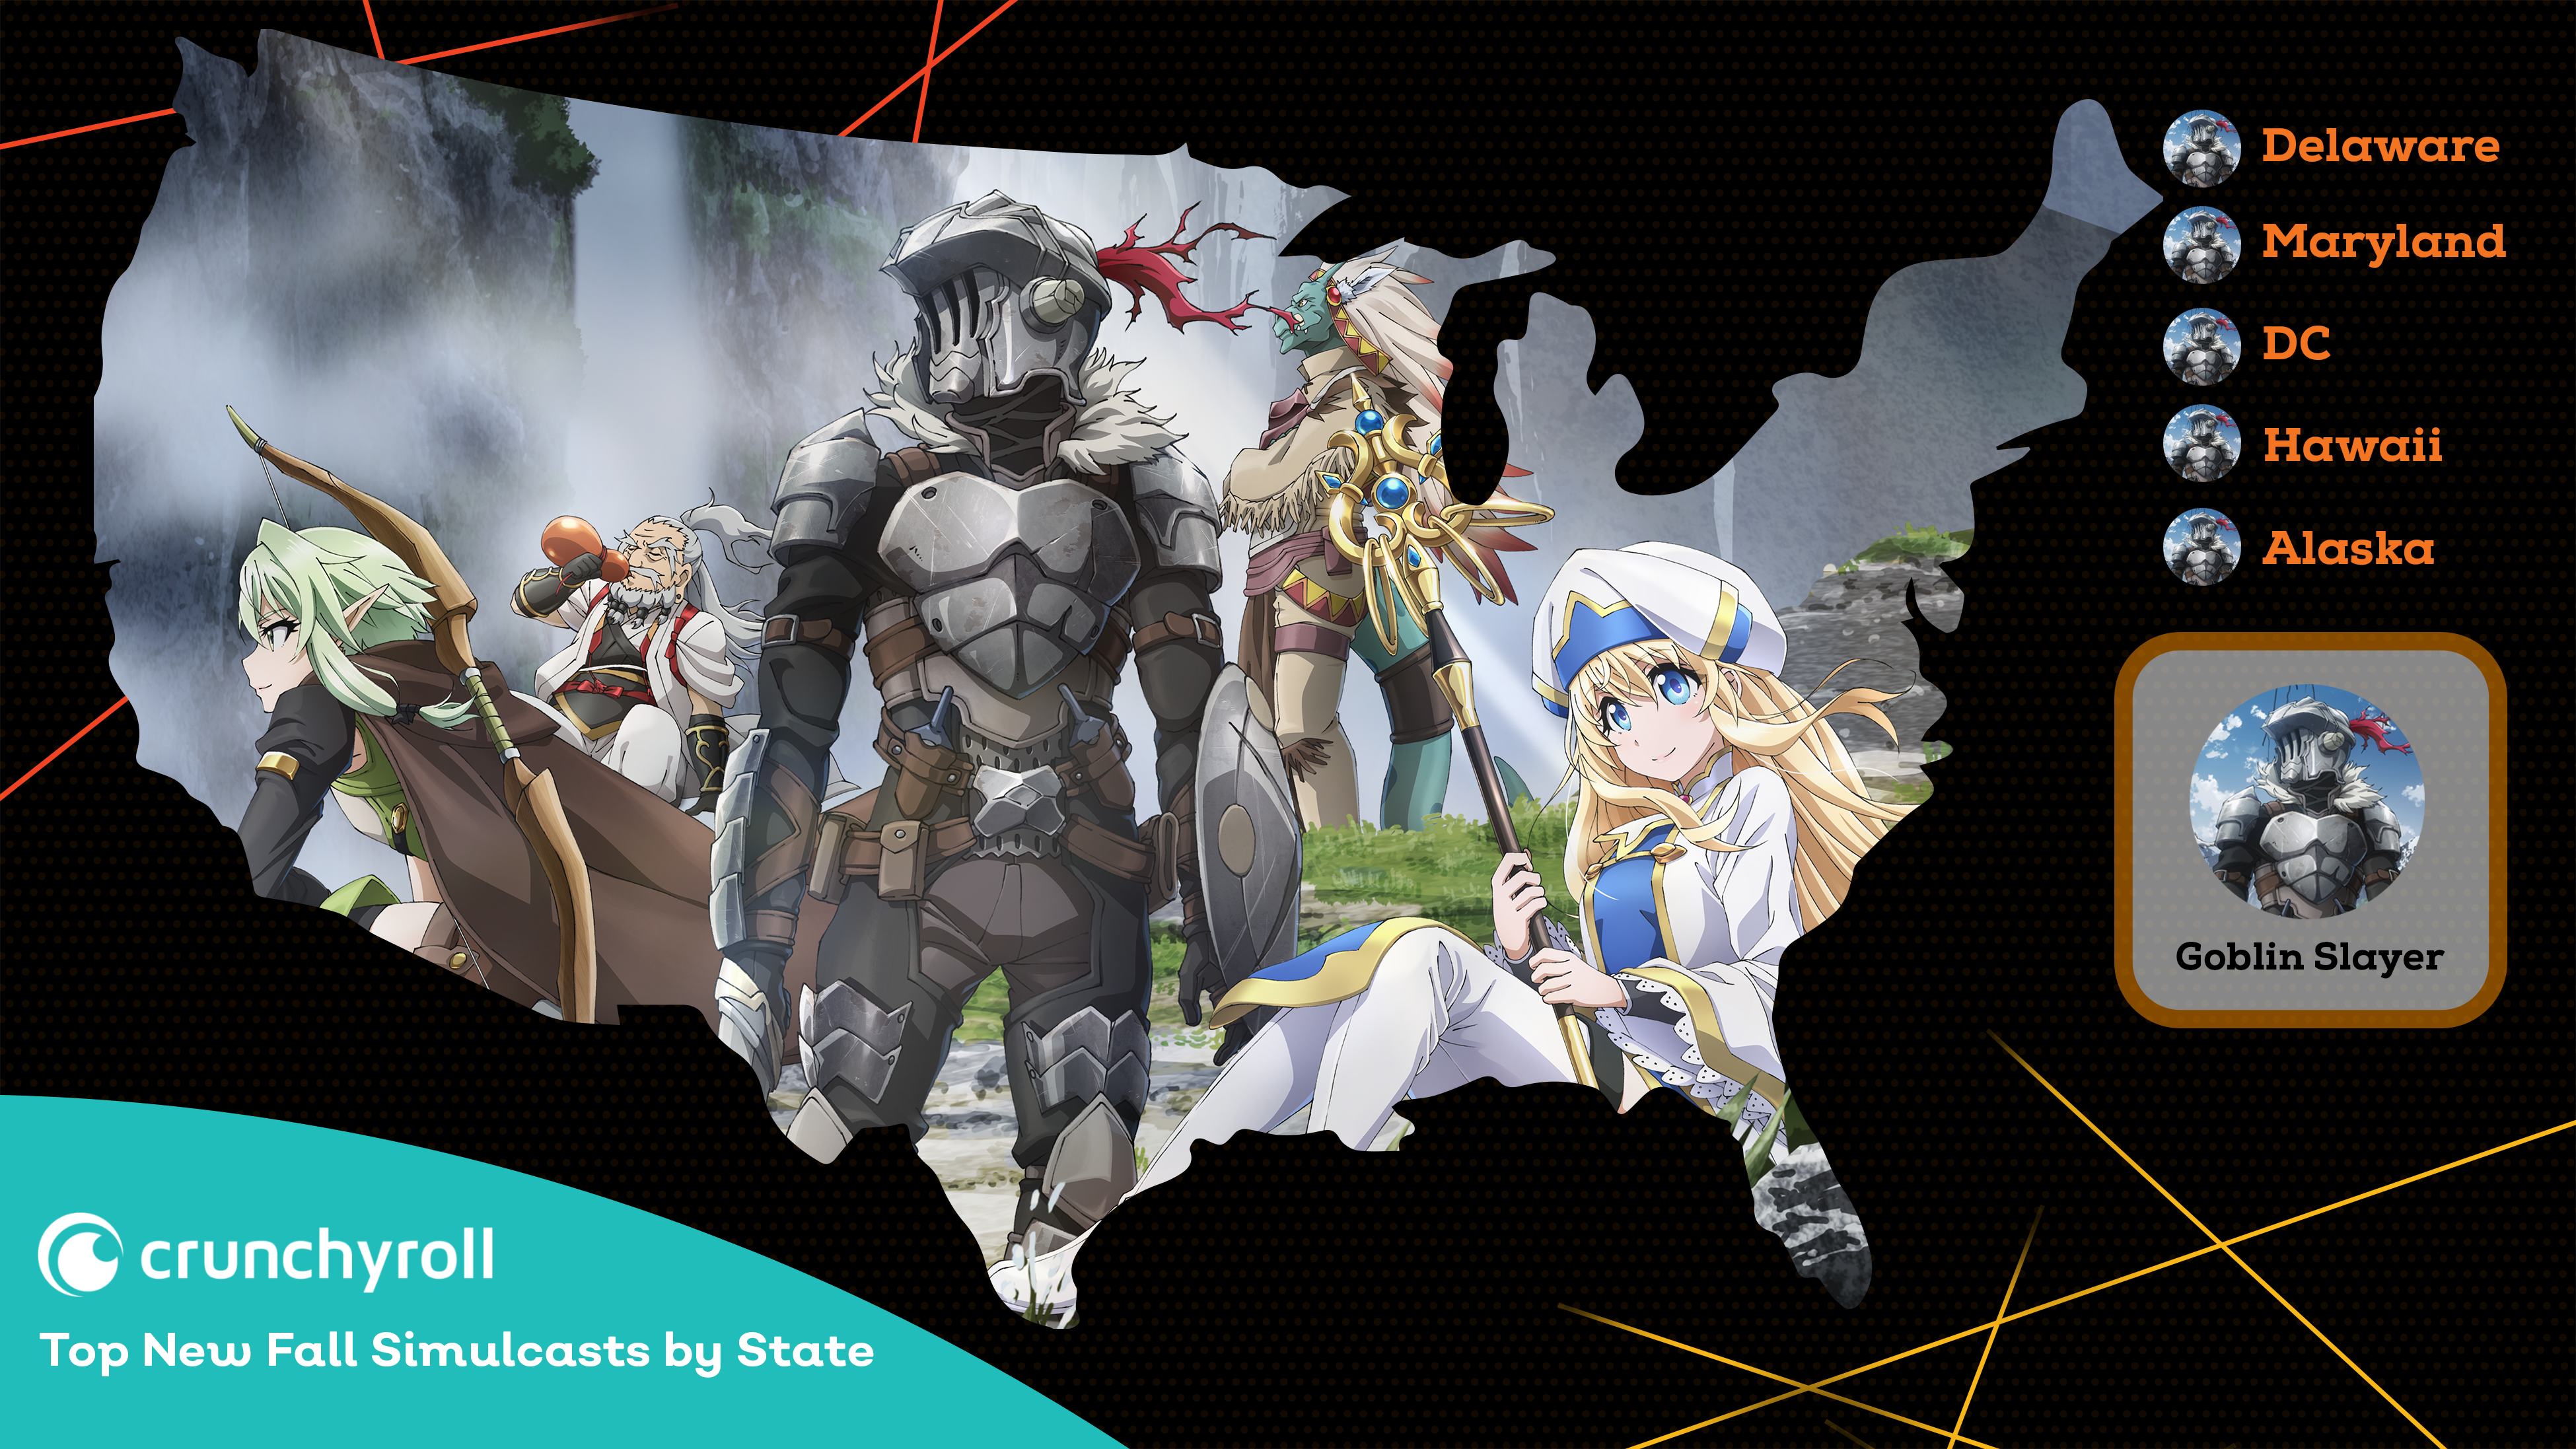 Crunchyroll's Most Popular Fall 2018 Anime by State